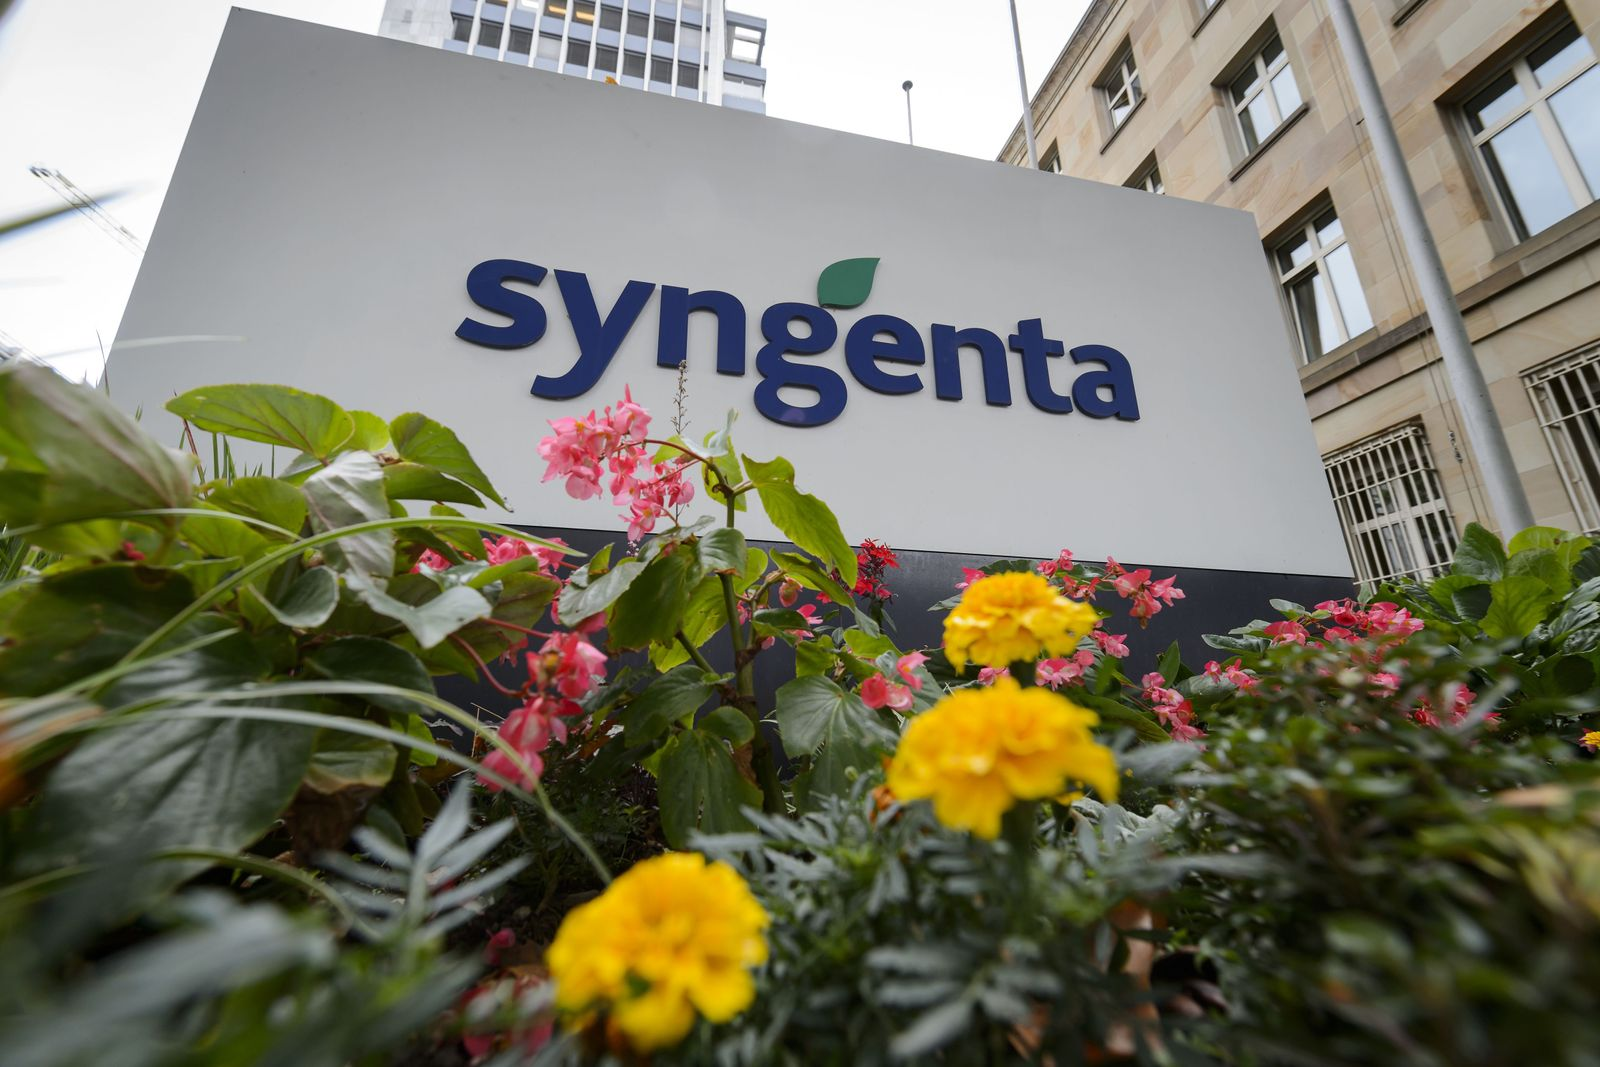 FILES-SWITZERLAND-CHINA-SYNGENTA-CHEMCHINA-CHEMICAL-TAKEOVER